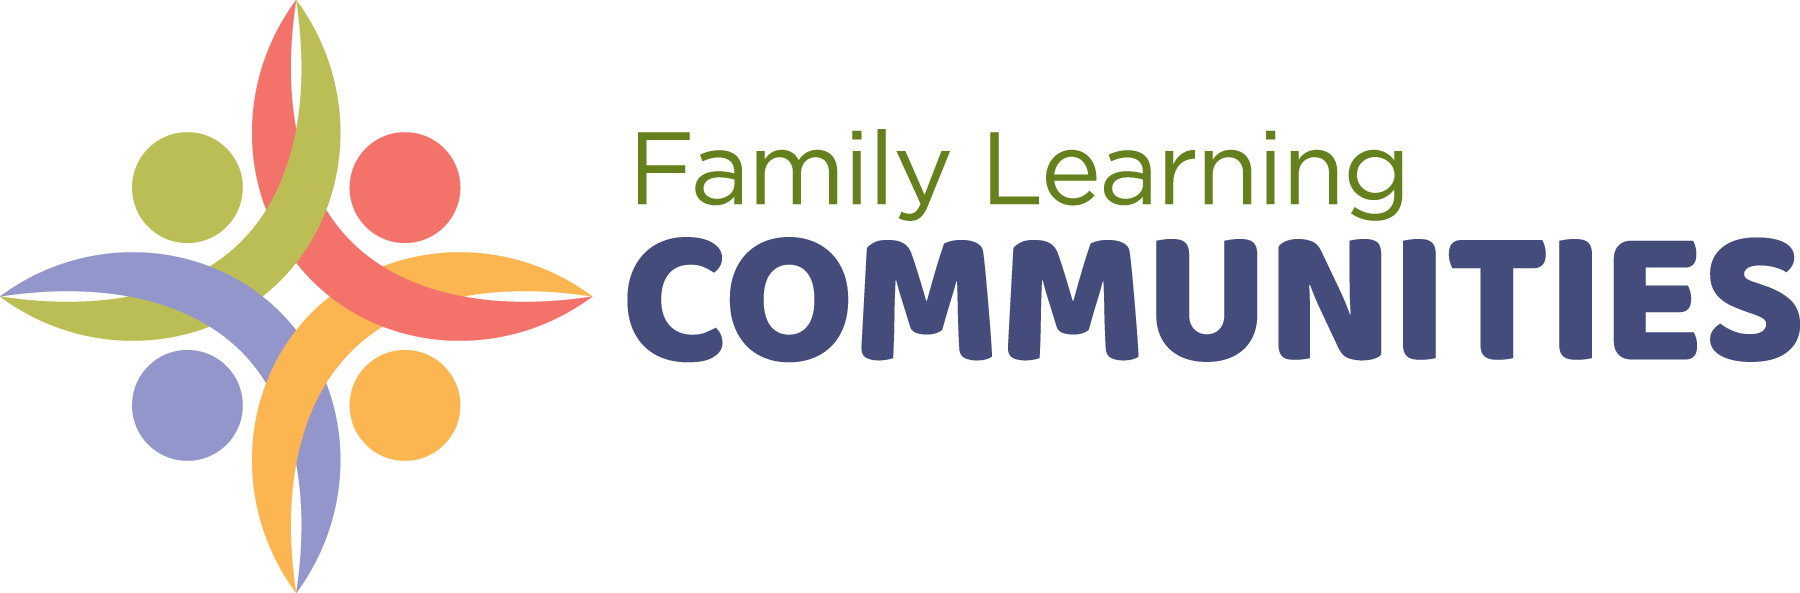 Family Learning Communities